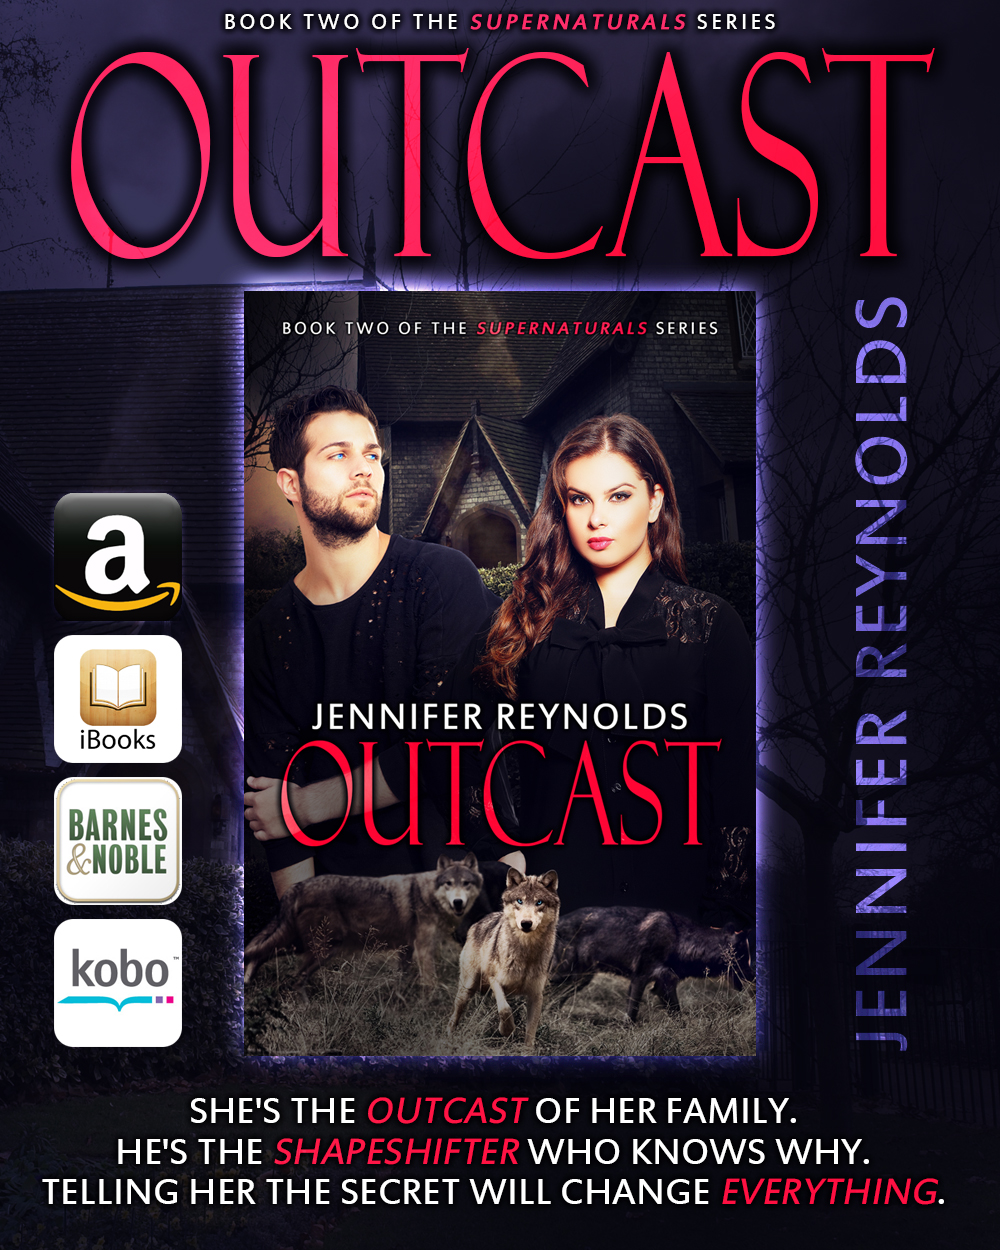 Outcast, Supernaturals Book 2, a BBW paranormal/shifter romance is $2.99.  Leigh Alexander has lived every day of her life feeling like an outcast amongst her family and the small-minded people of Pine Hollow, a secretive community to which her parents belong. When Danielle, Leigh's younger sister, asks Leigh to come home for her wedding, Leigh's torn between wanting to be there for her sister and saving herself from people who've despised her all of her life.  Knowing she'll regret her decision, Leigh gives into her sister and goes home for what she hopes is the last time. Leigh was prepared for people to ignore her, for them to shun her, for them to point out all the ways she didn't belong all because she wasn't a size perfect, but what she hadn't been prepared for was falling for Ryan Hart, a man who she will soon learn knows all of the secrets her family and the town of Pine Hollow refuse to tell her.  Revealing the truth about Pine Hollow and the rest of the supernatural world might be forbidden, but to save Leigh's life, Ryan will tell her everything about who she is, or more importantly who she isn't, even if it will forever change her life and the lives of every person in Pine Hollow. Outcast is a full-length, stand-alone eBook.   Amazon   iTunes    NOOK    Kobo    Read the first eight chapters of Outcast on Goodreads at:   Outcast    Chapter 1   Chapter 2    Chapter 3    Chapter 4   Chapter 5    Chapter 6    Chapter 7     Chapter 8